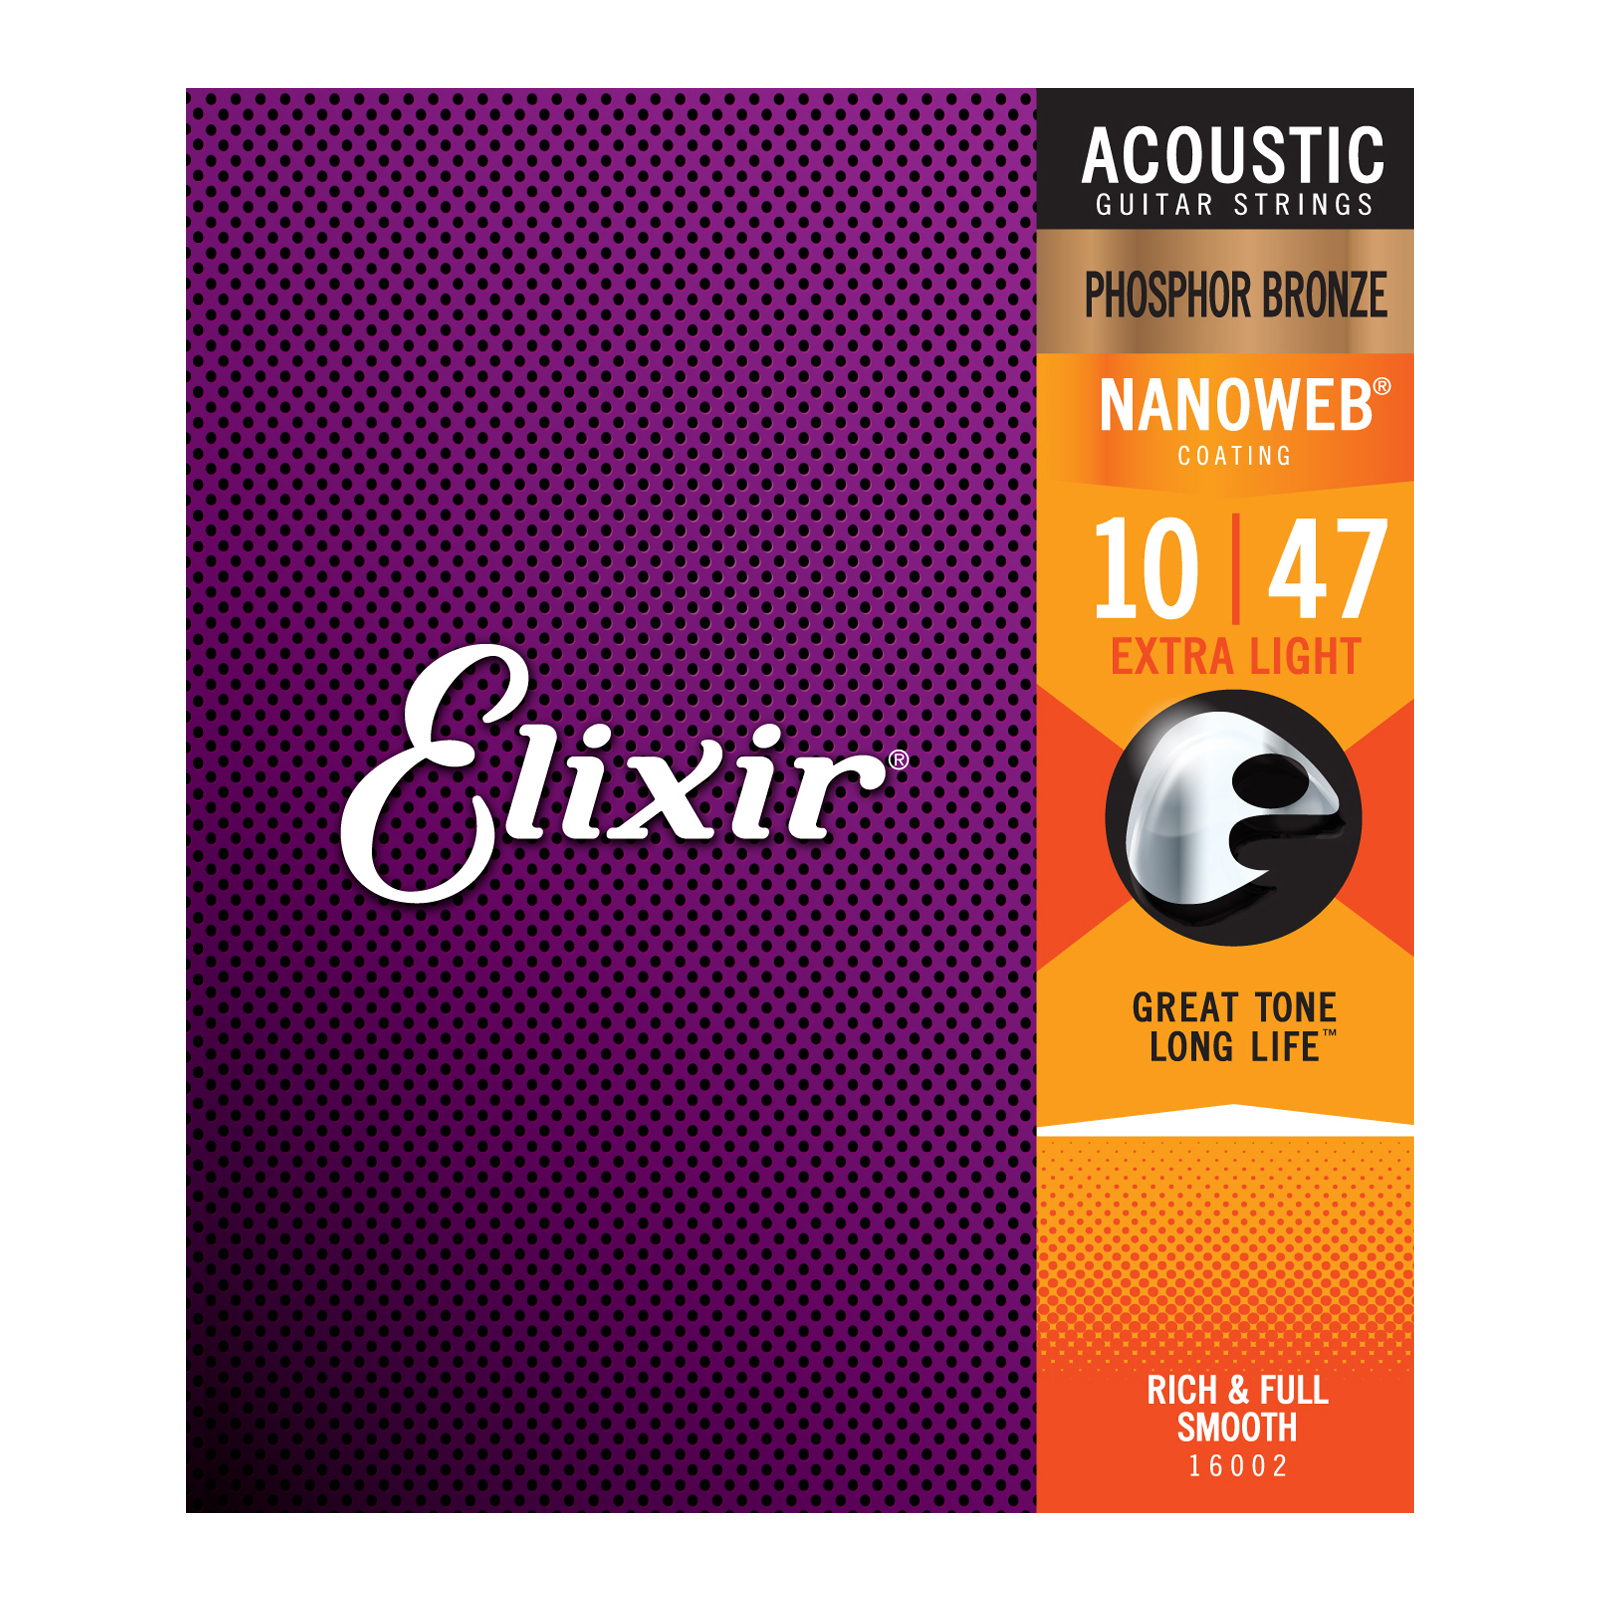 ELIXIR 16002 ACOUSTIC GUITAR STRINGS PHOSPHOR BRONZE NANOWEB 10-47